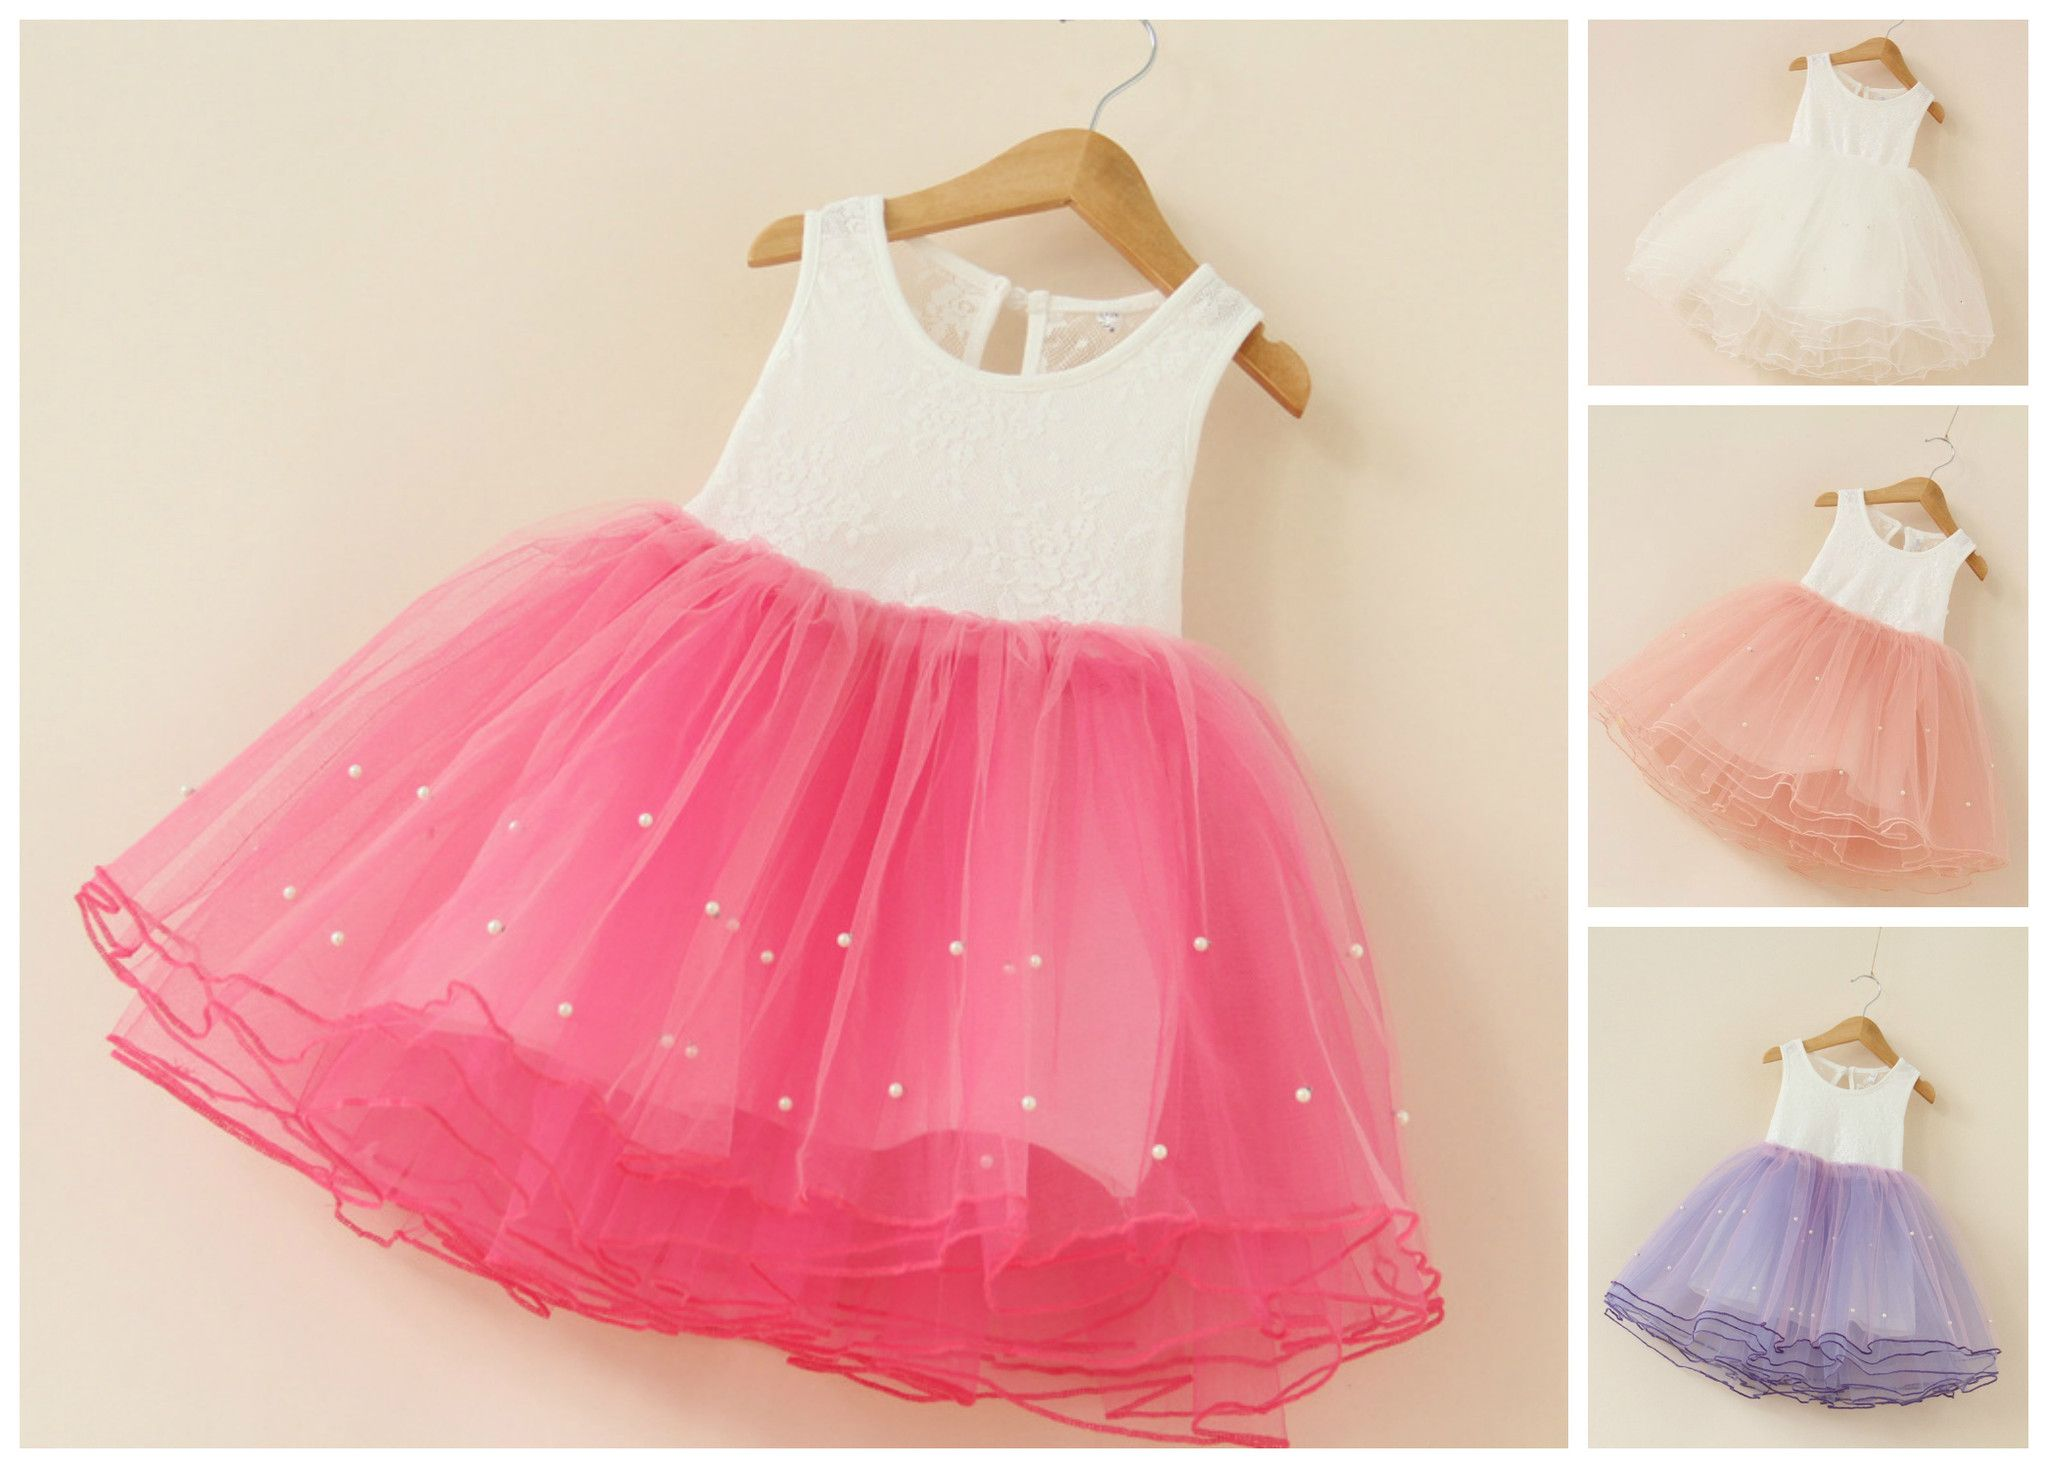 e946bfa5667 Baby Girl Toddler Lace Puffy Occasion Dress #childrendress #occasiondress  #partydress #puffydress